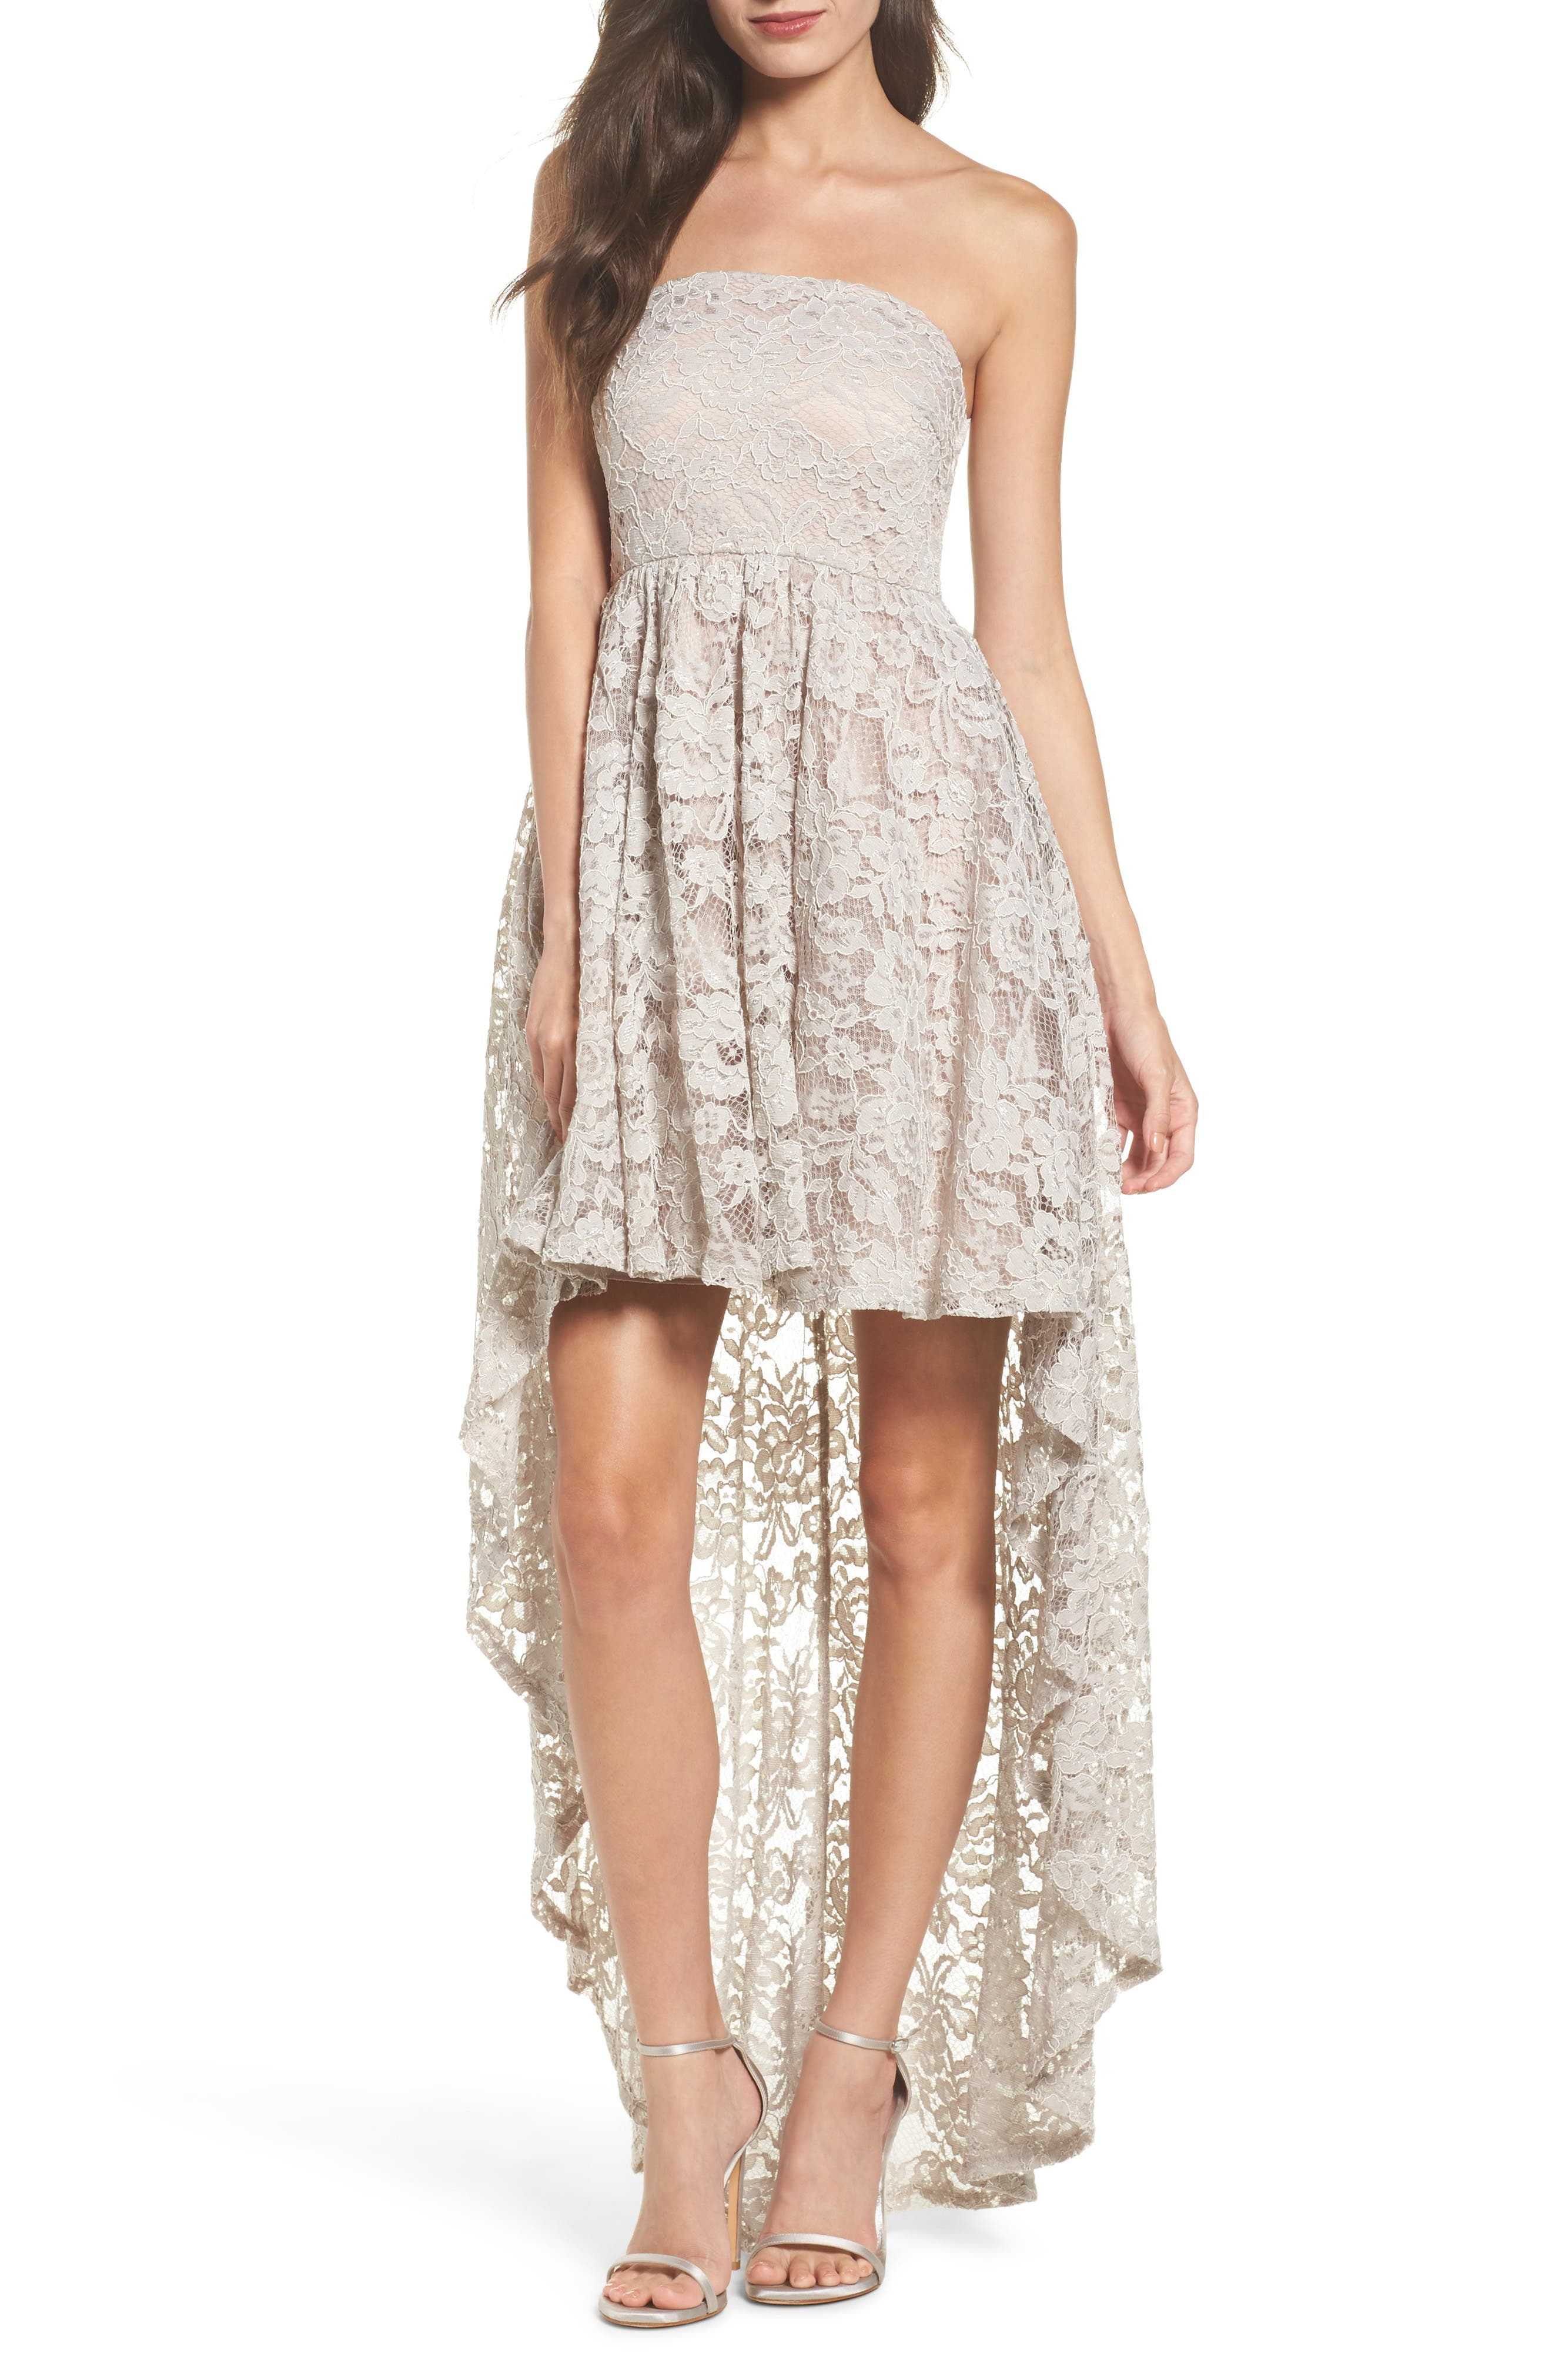 Sequin Hearts Strapless Lace High/Low Dress